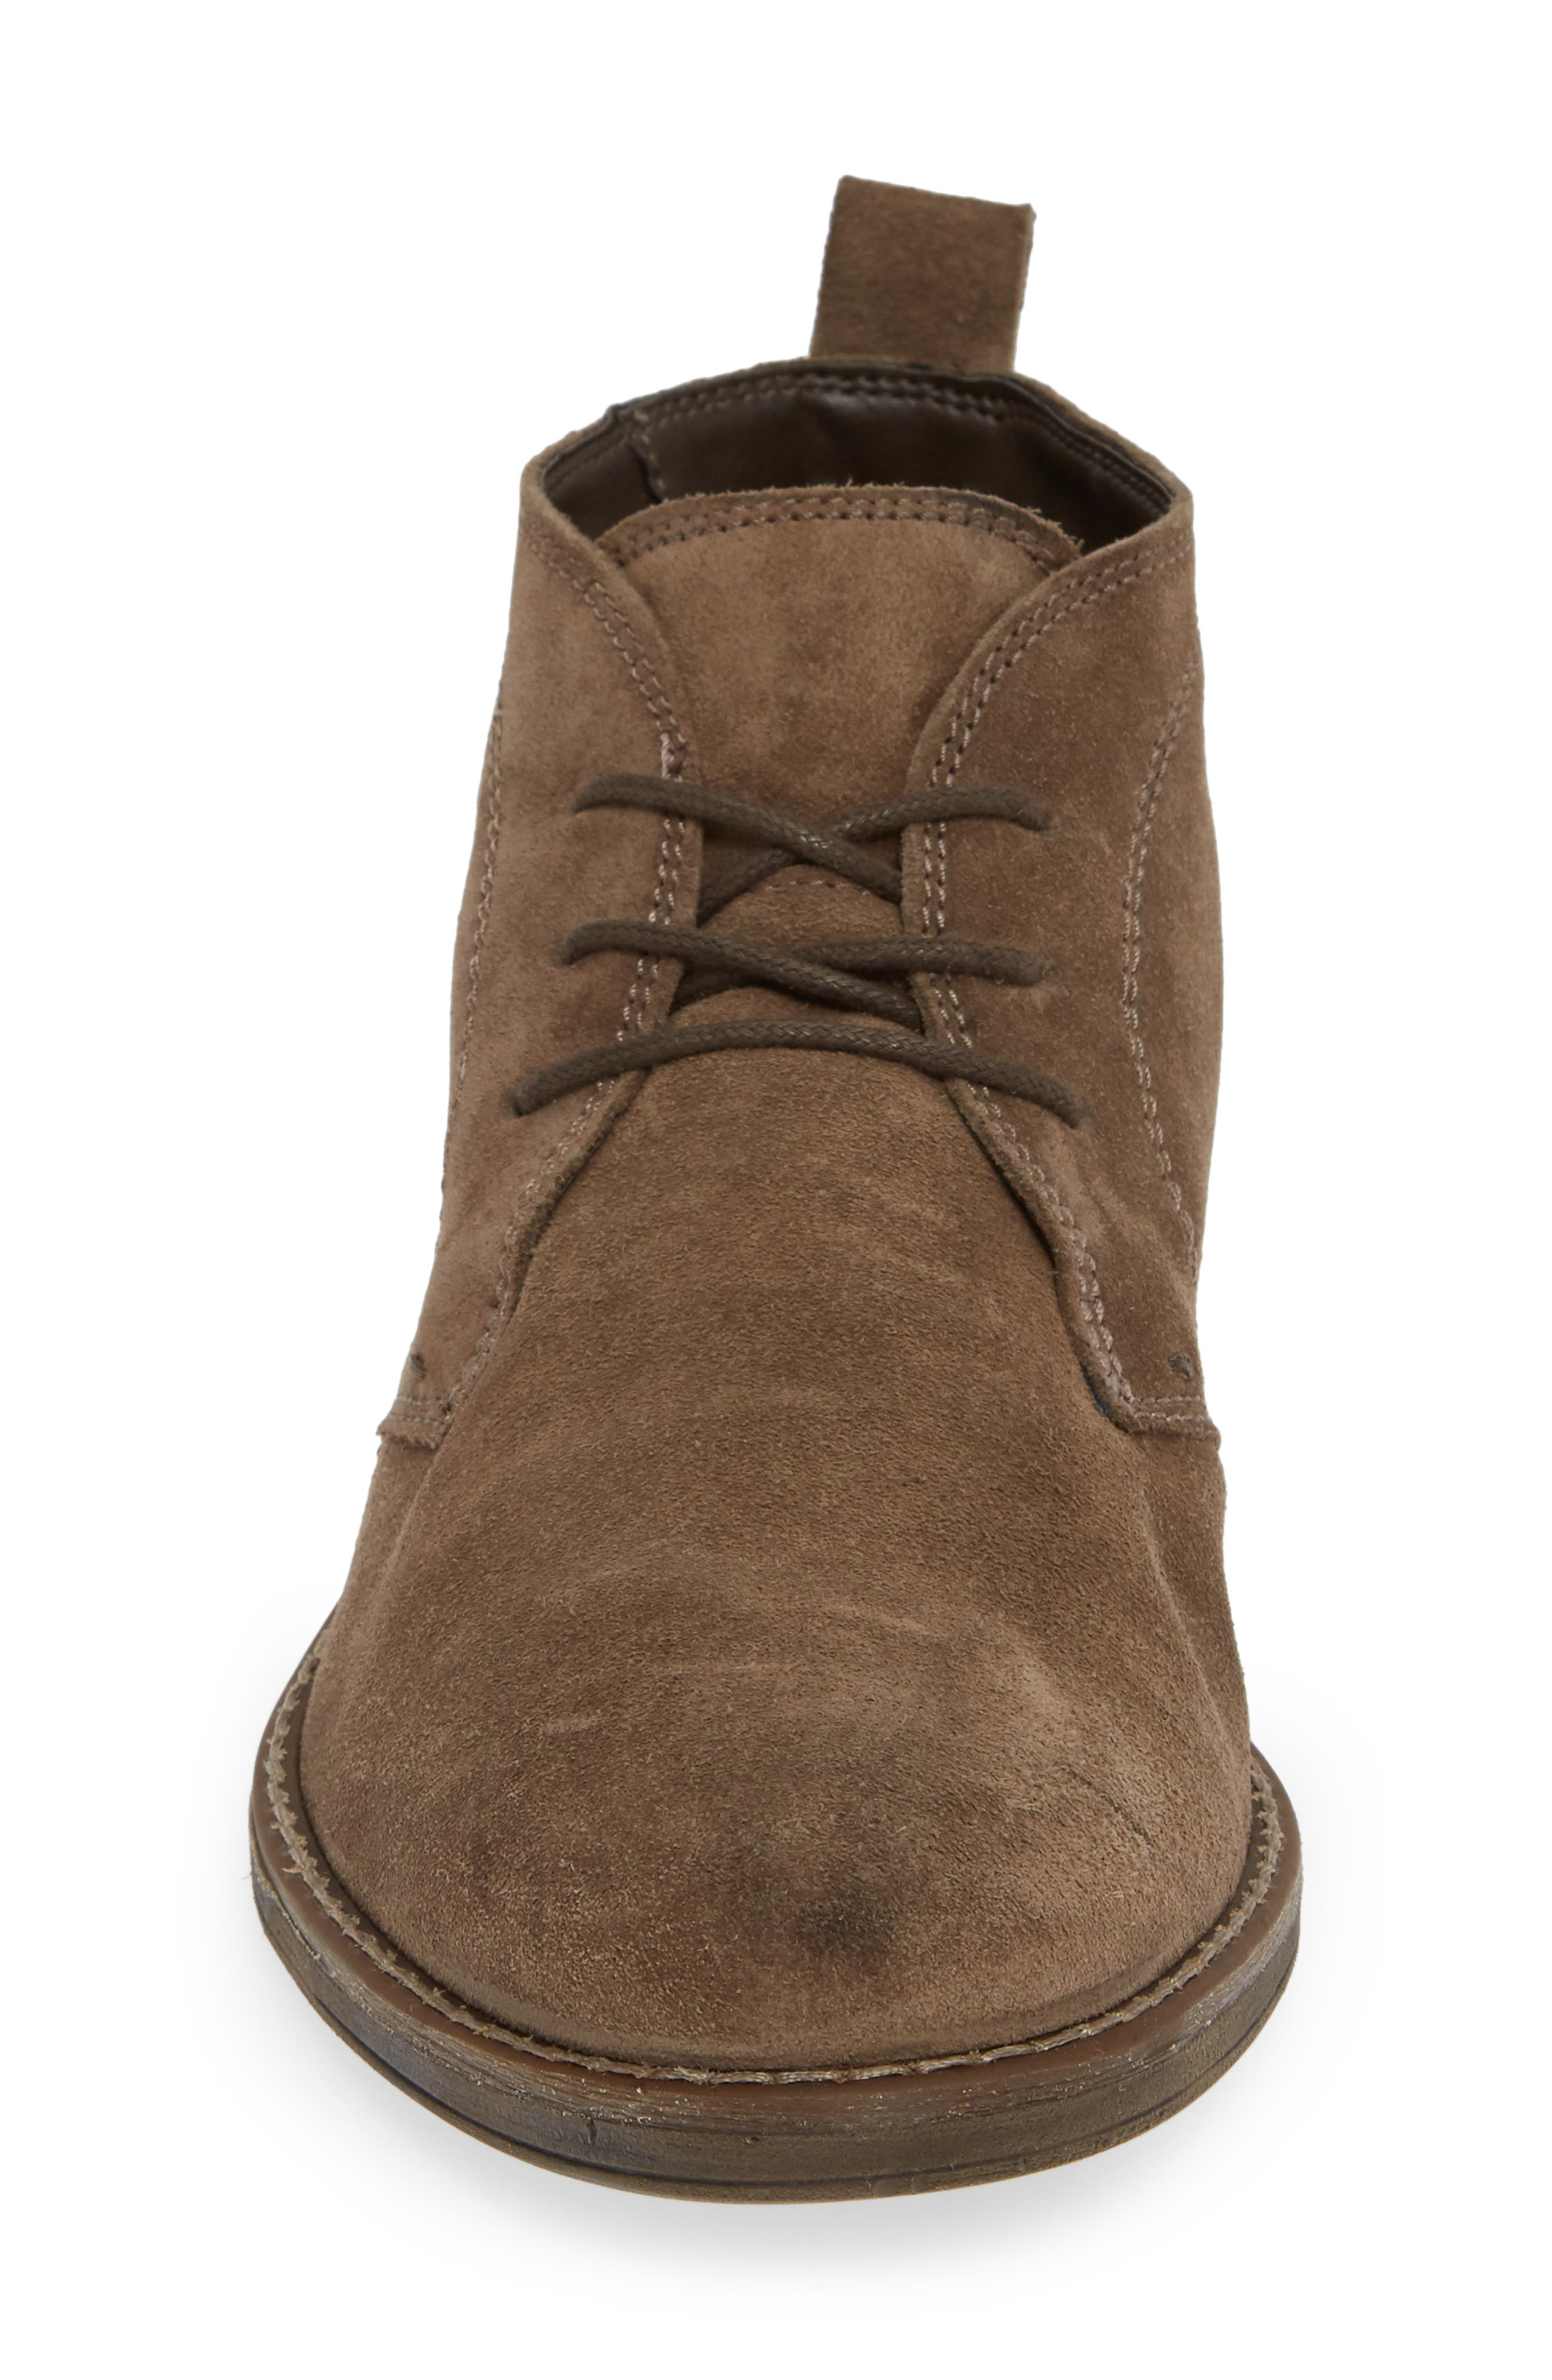 Stevens Waterproof Chukka Boot,                             Alternate thumbnail 4, color,                             TAUPE SUEDE